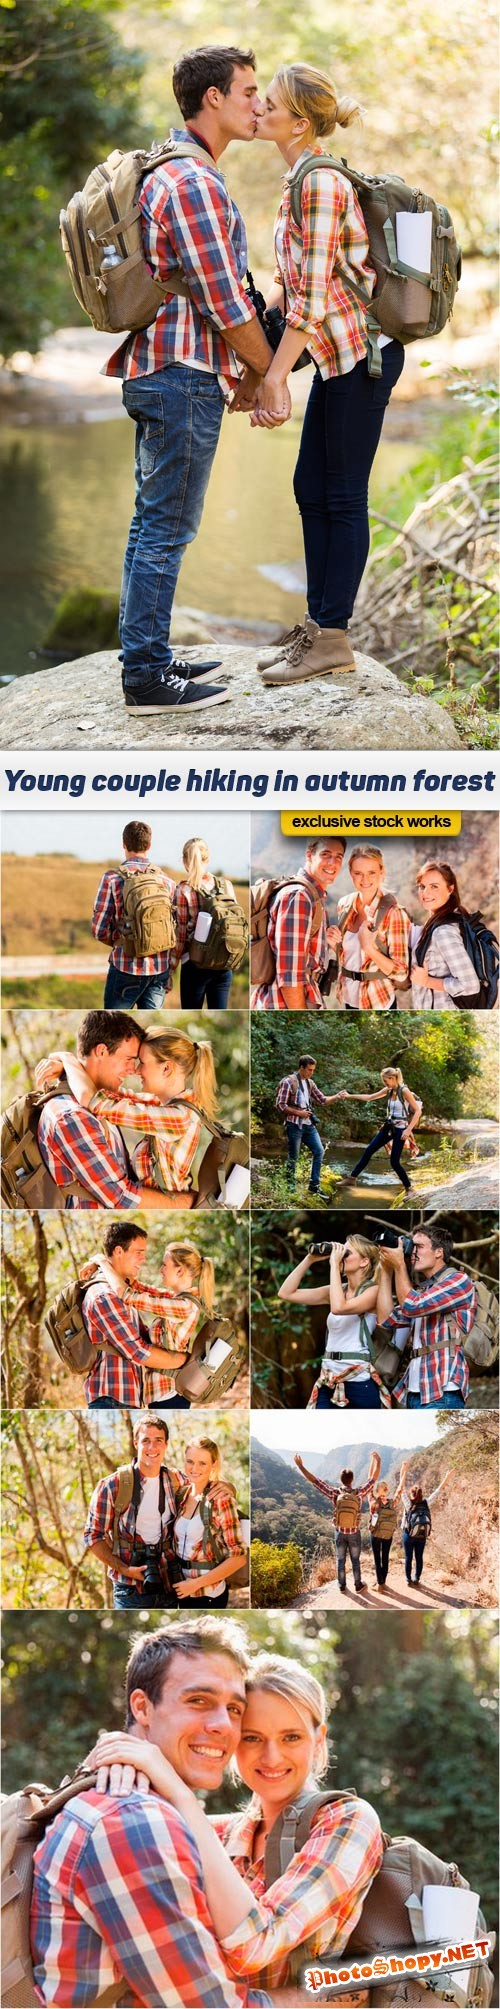 Young couple hiking in autumn forest - 10 UHQ JPEG